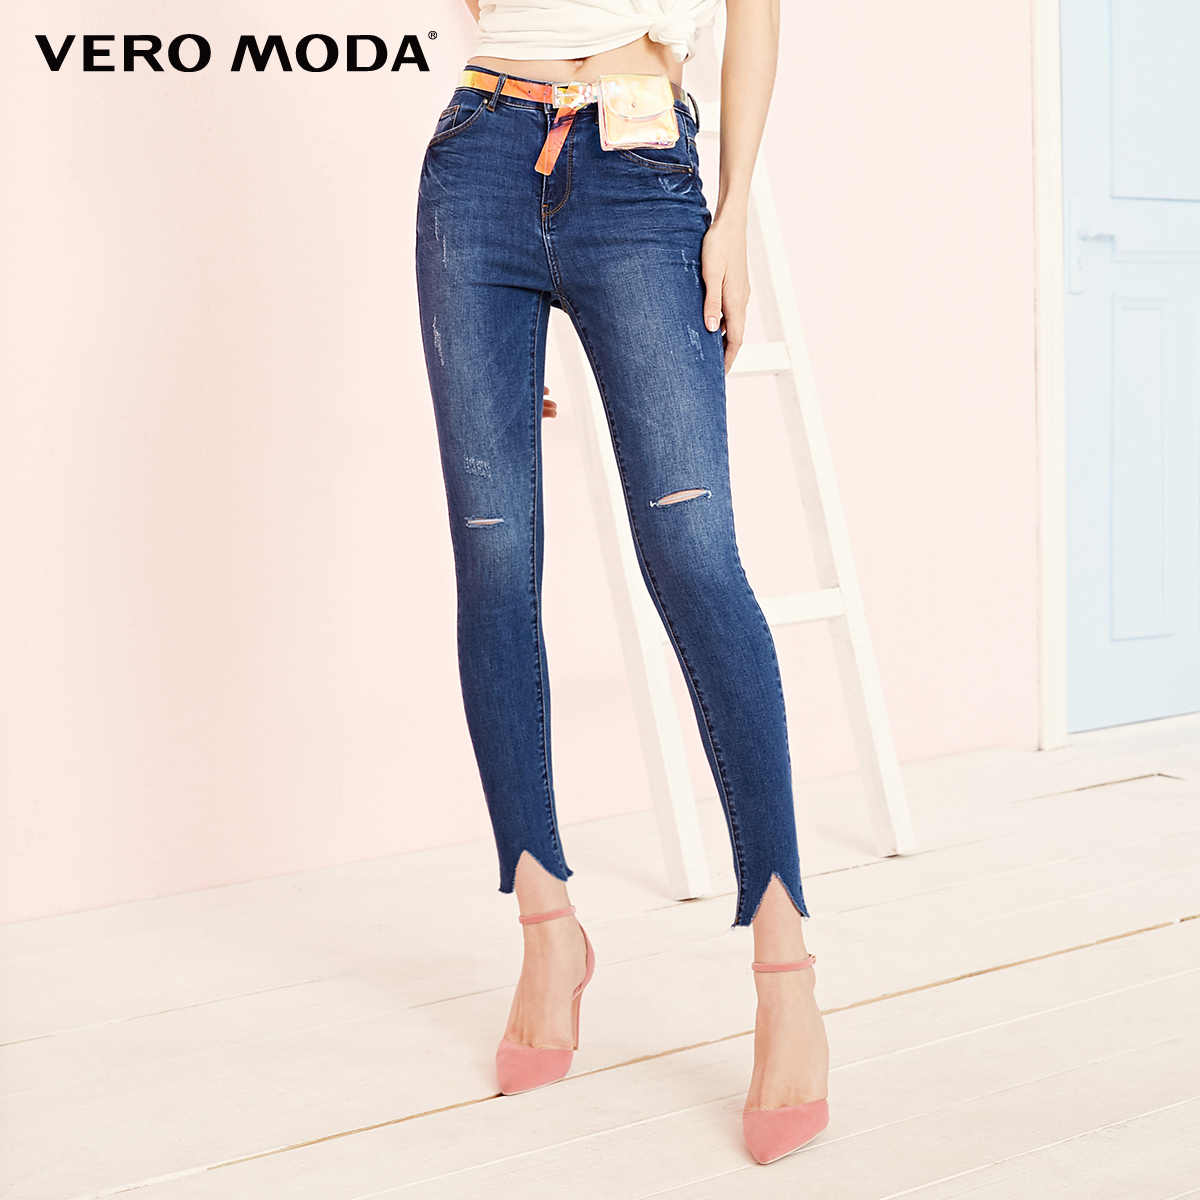 Vero Moda Women's Slim Fit Stretch Lycra Distressed cuffs Jeans | 319149550